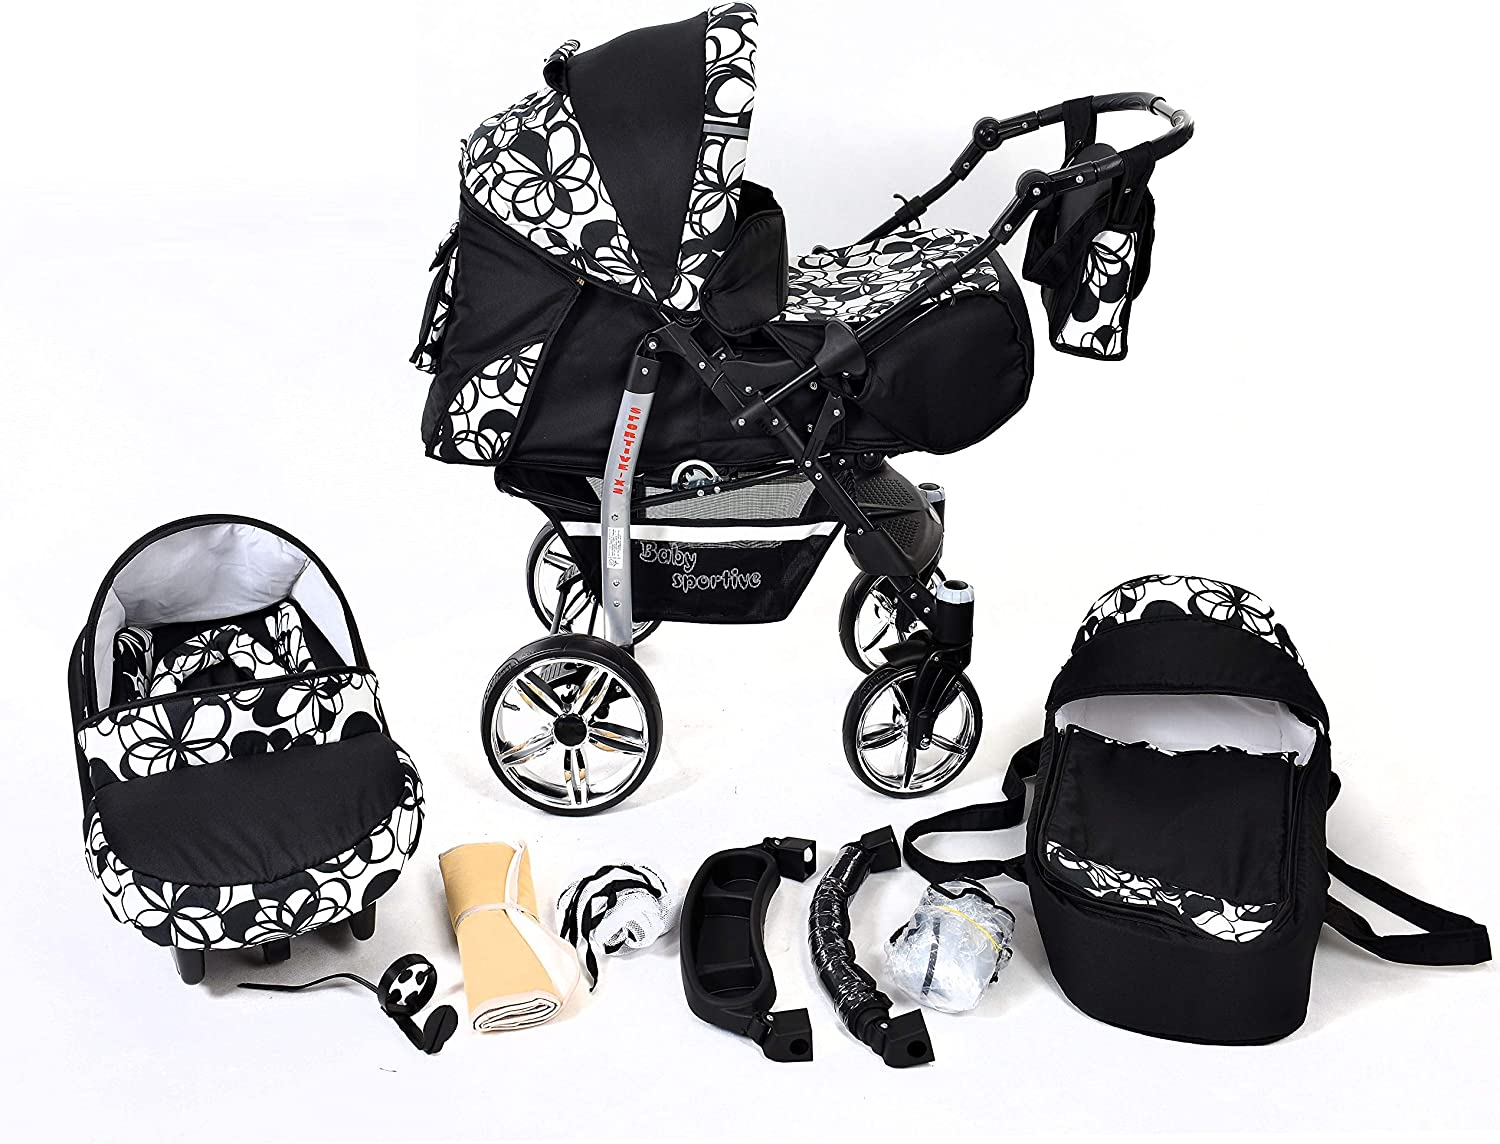 Sportive X2, 3-in-1 Travel System incl. Baby Pram with Swivel Wheels, Car Seat, Pushchair & Accessories (3-in-1 Travel System, Black & Flowers)